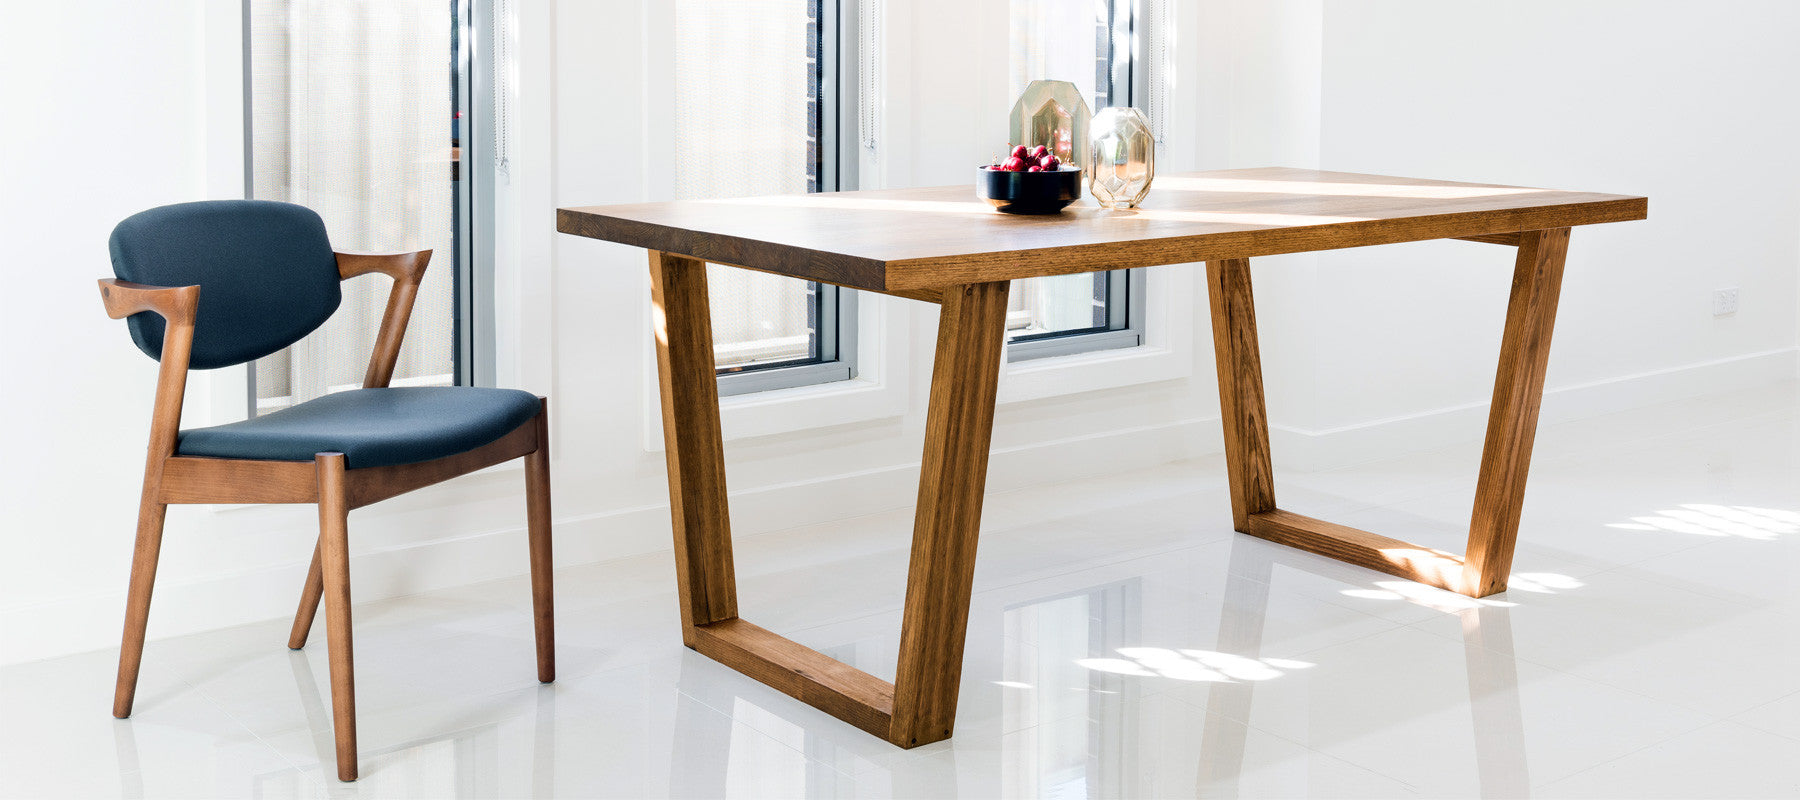 Vic solid timber dining table setting